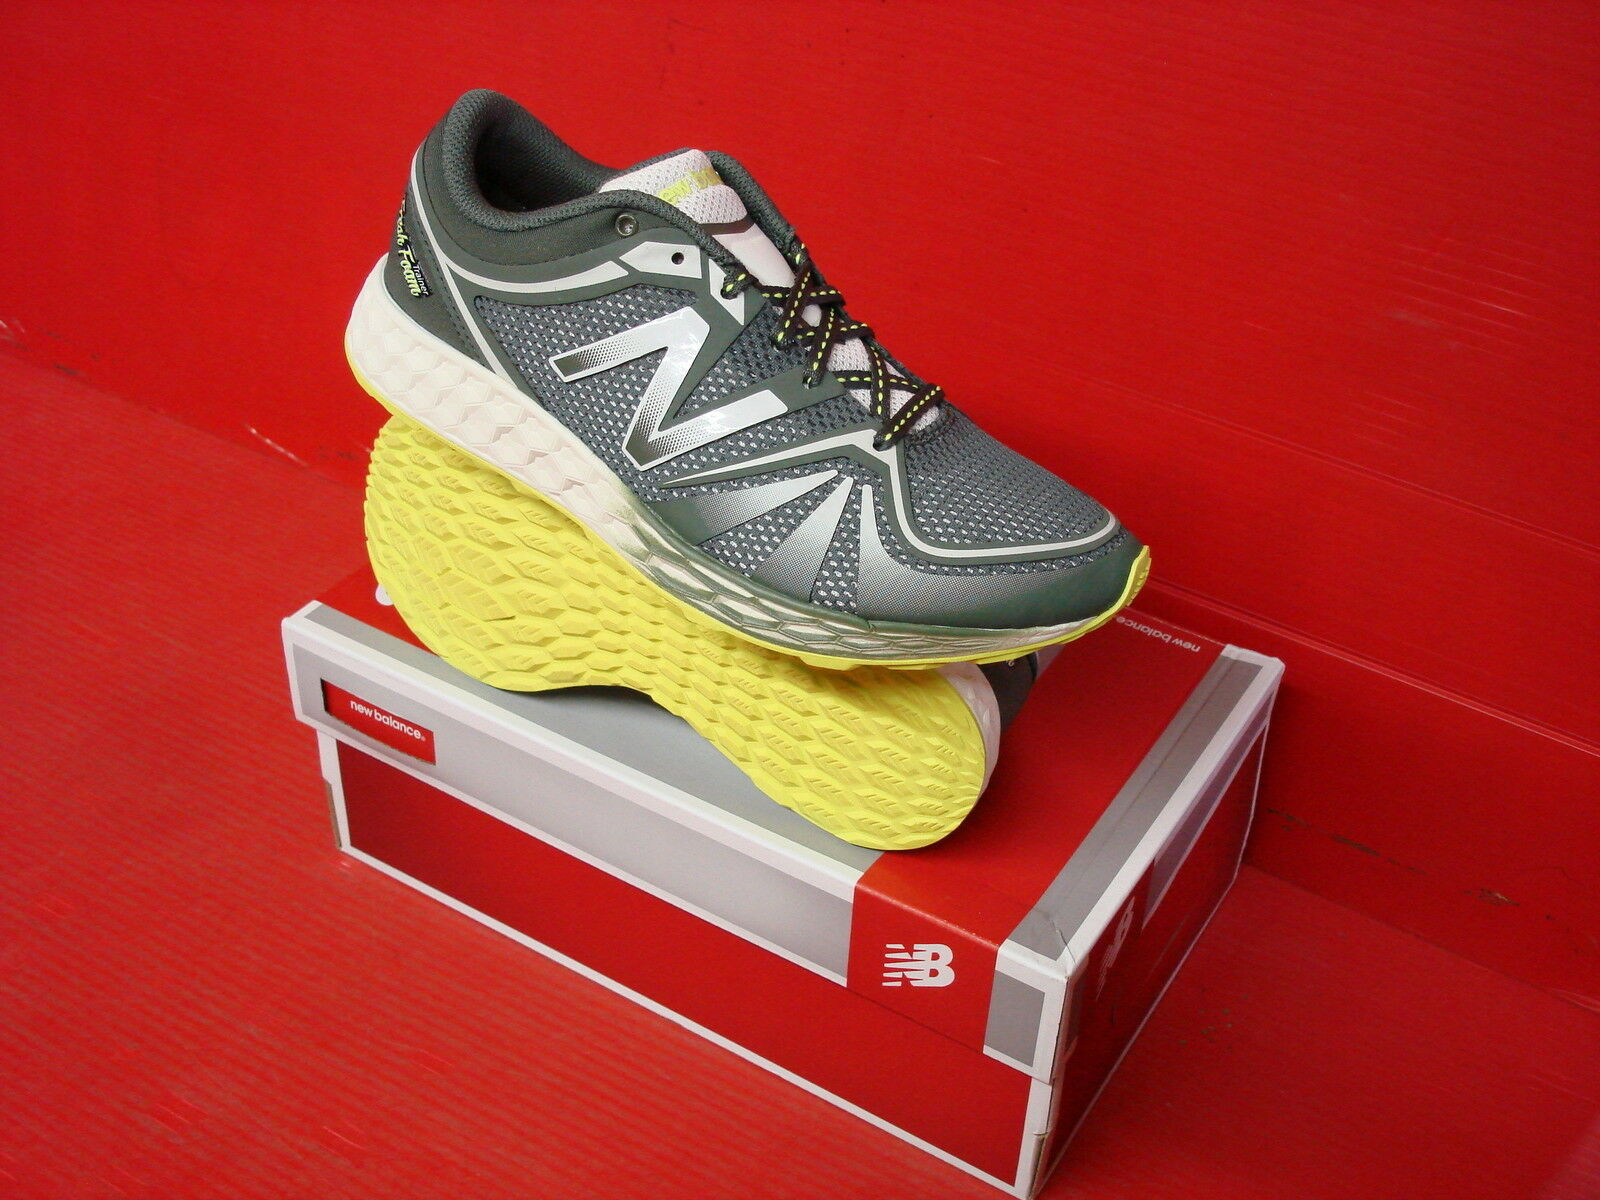 NEW BALANCE 822 TRAINING damen RUNNING WX822 WX822 WX822 edd849